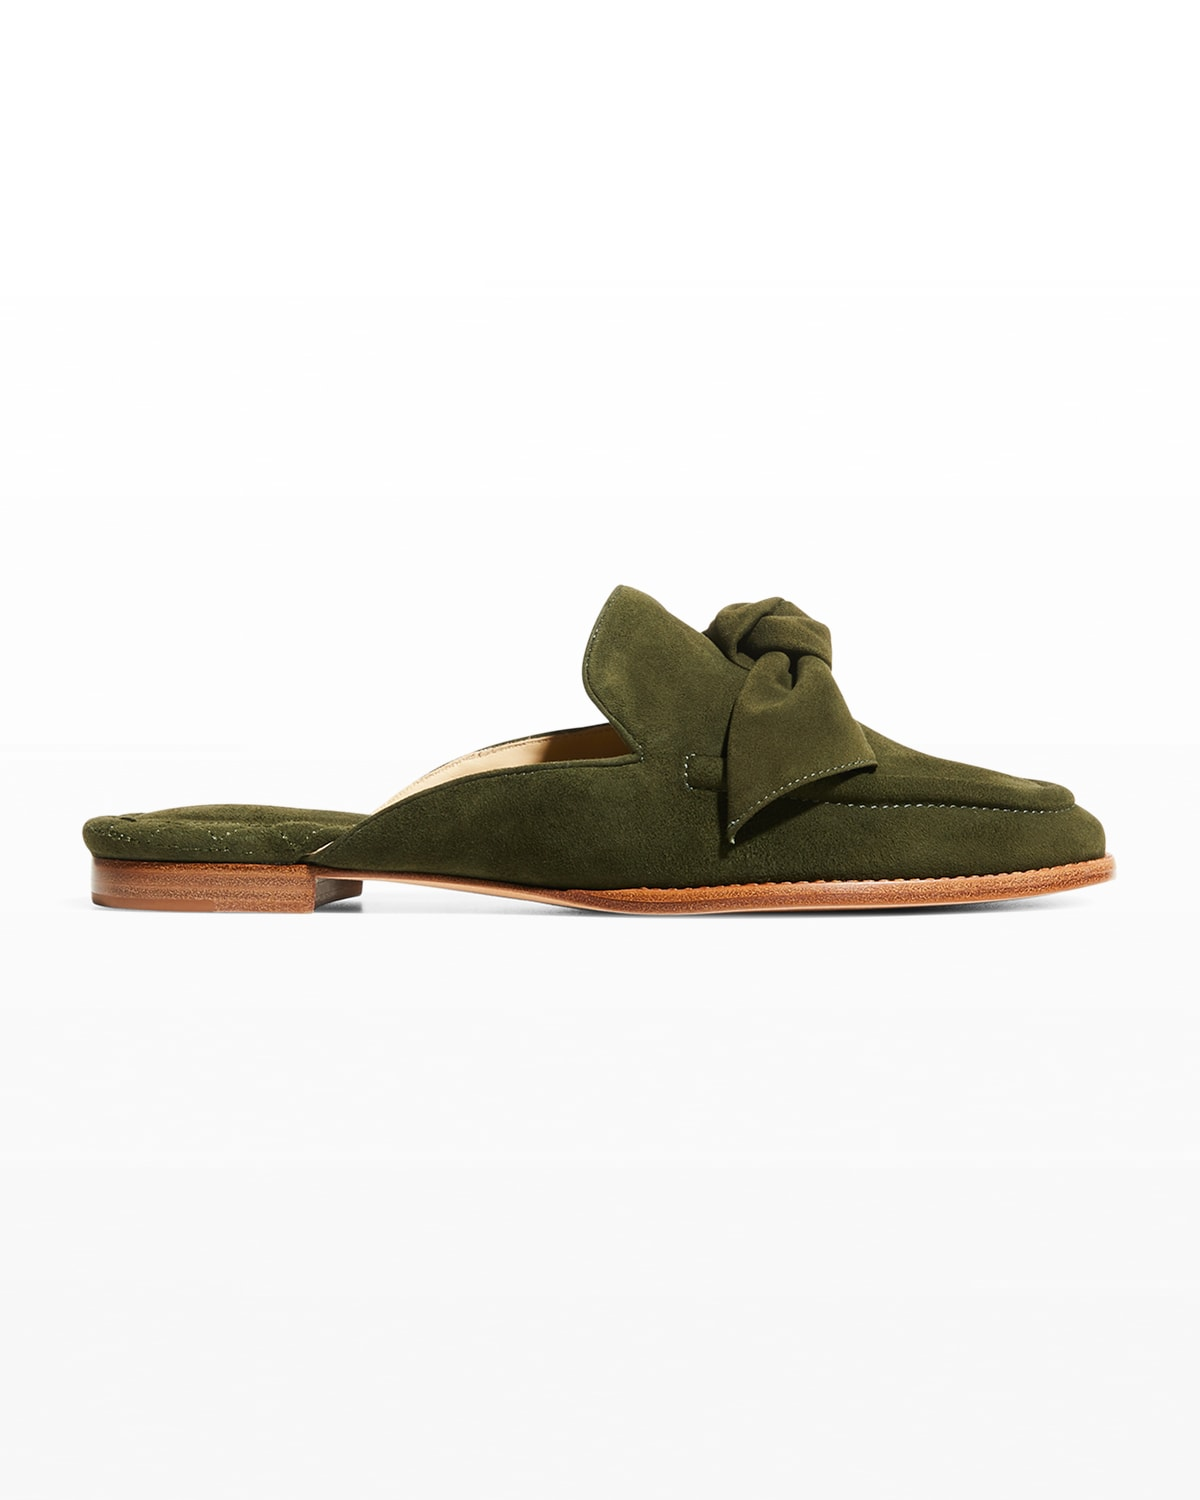 Maxi Clarita Suede Knot Loafer Mules